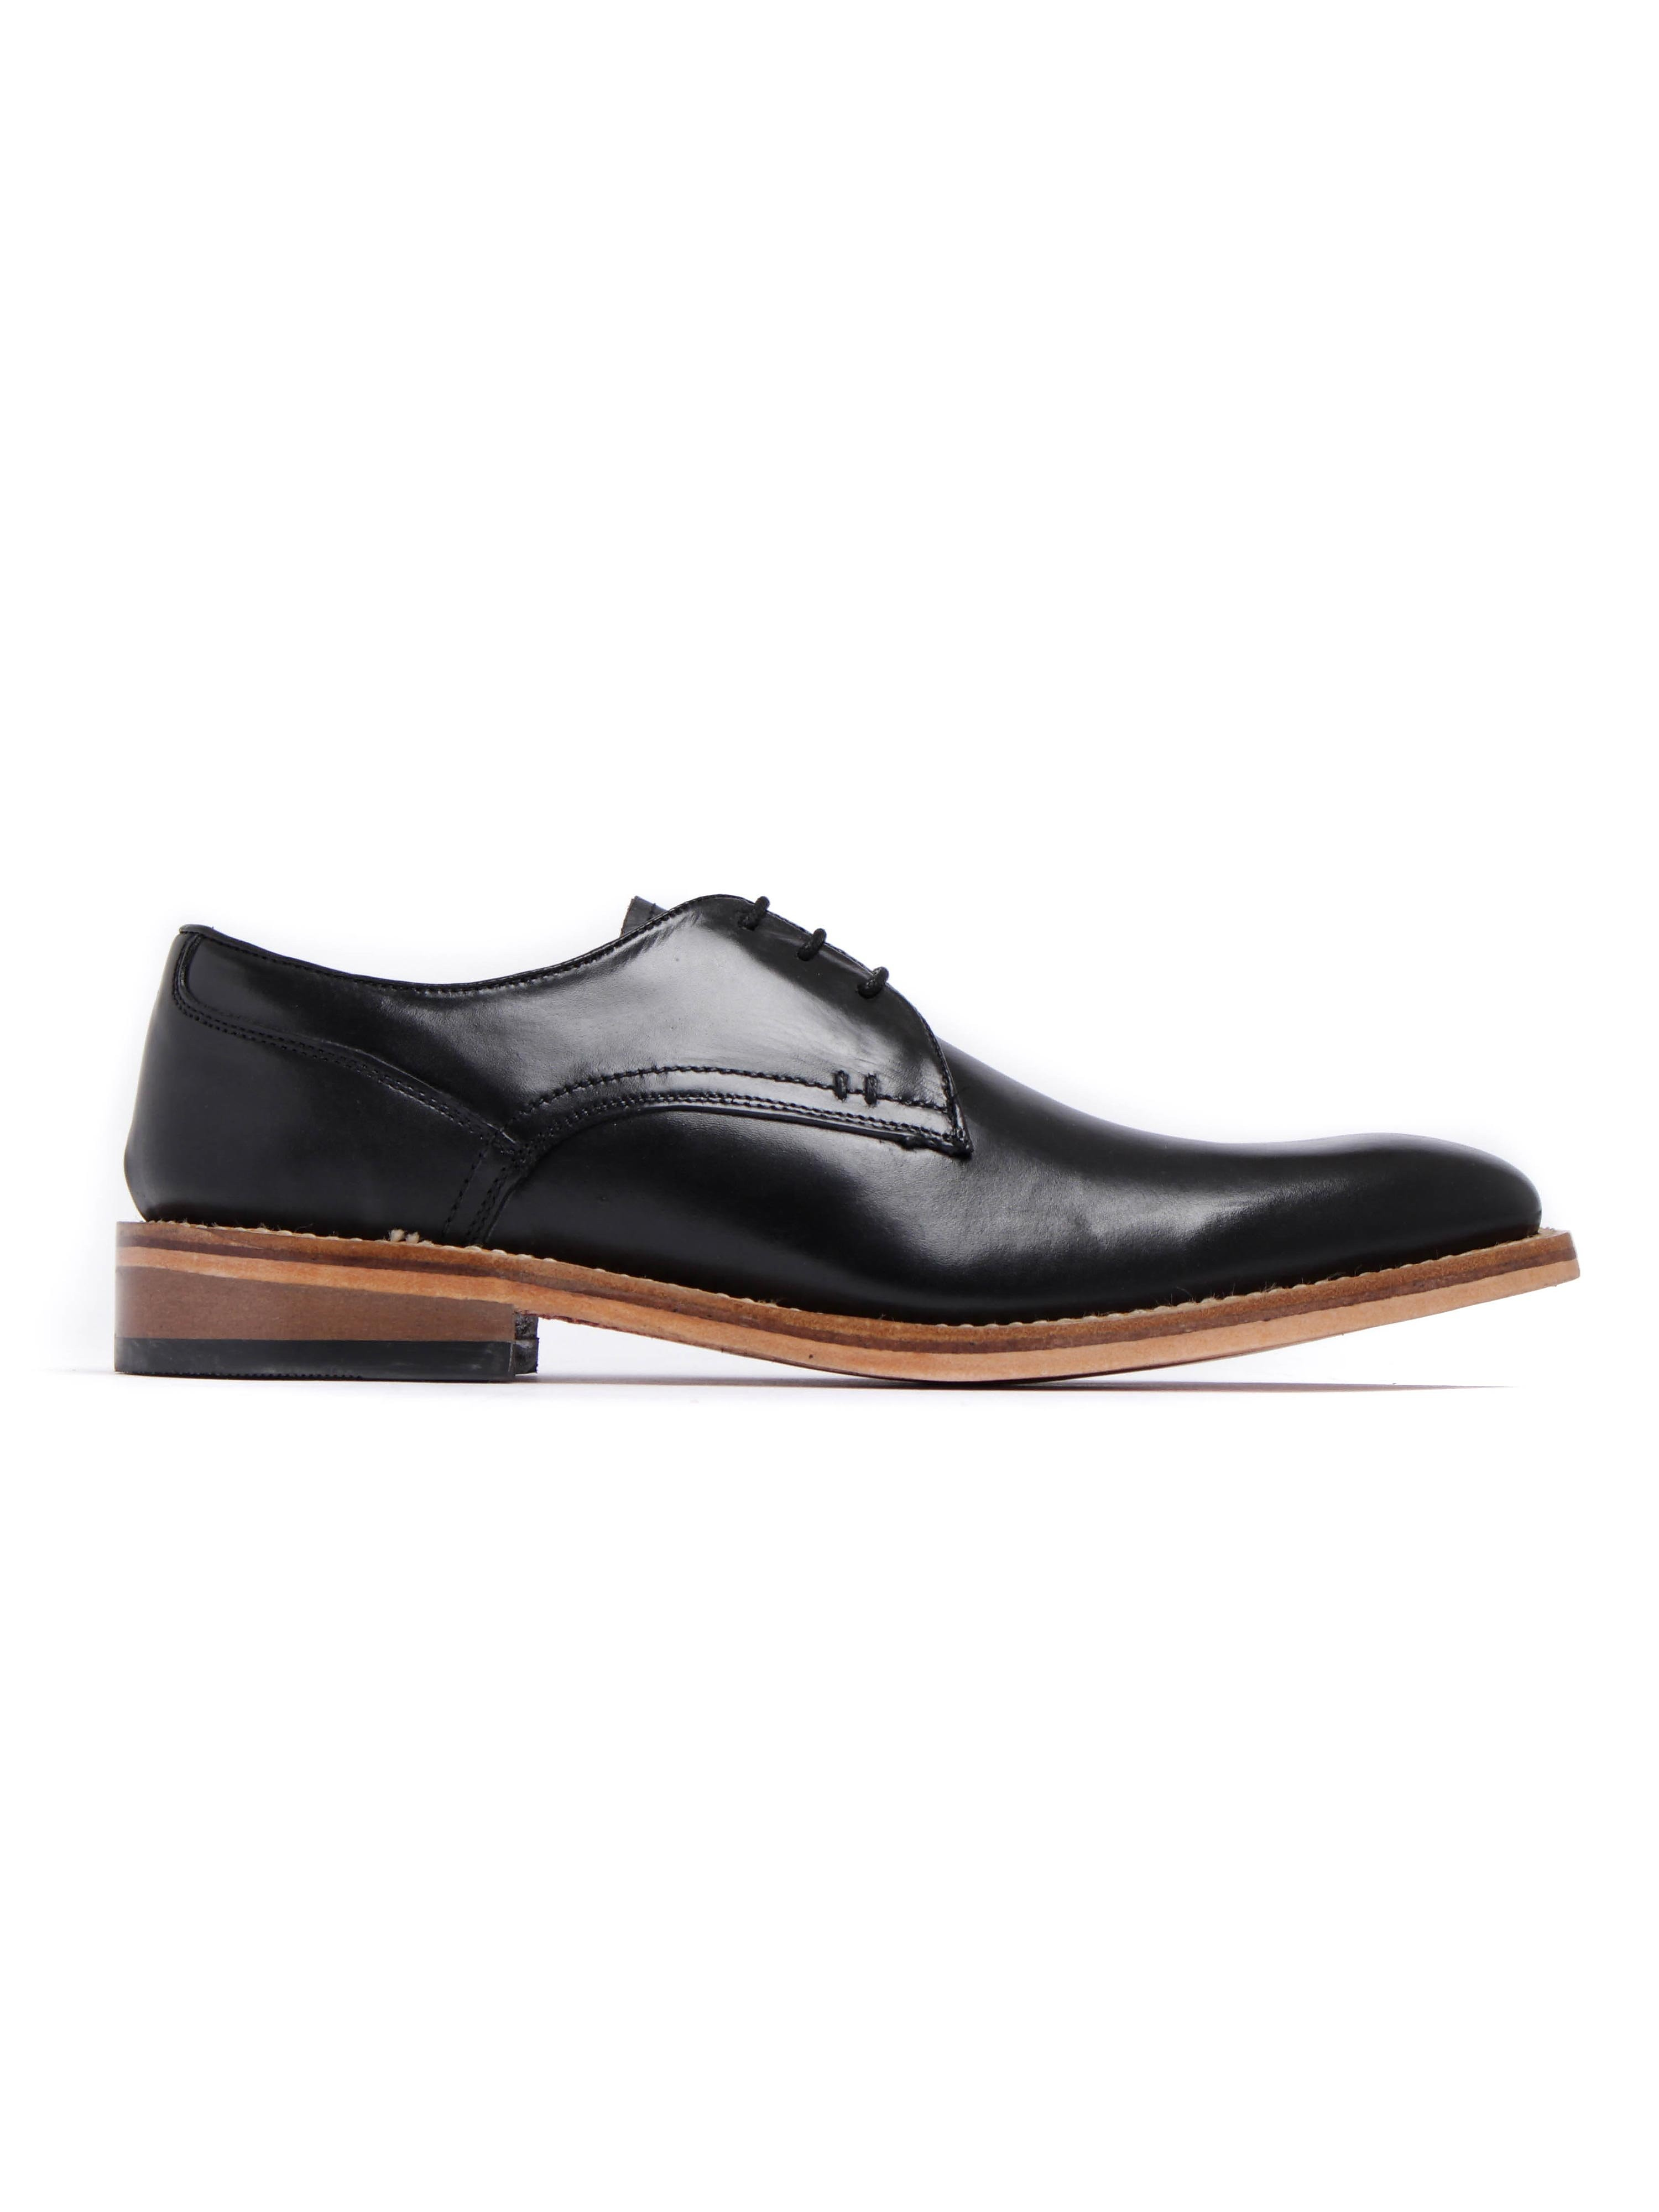 Russell Thomas Mens Surrey Plain Black Leather Derby Shoes